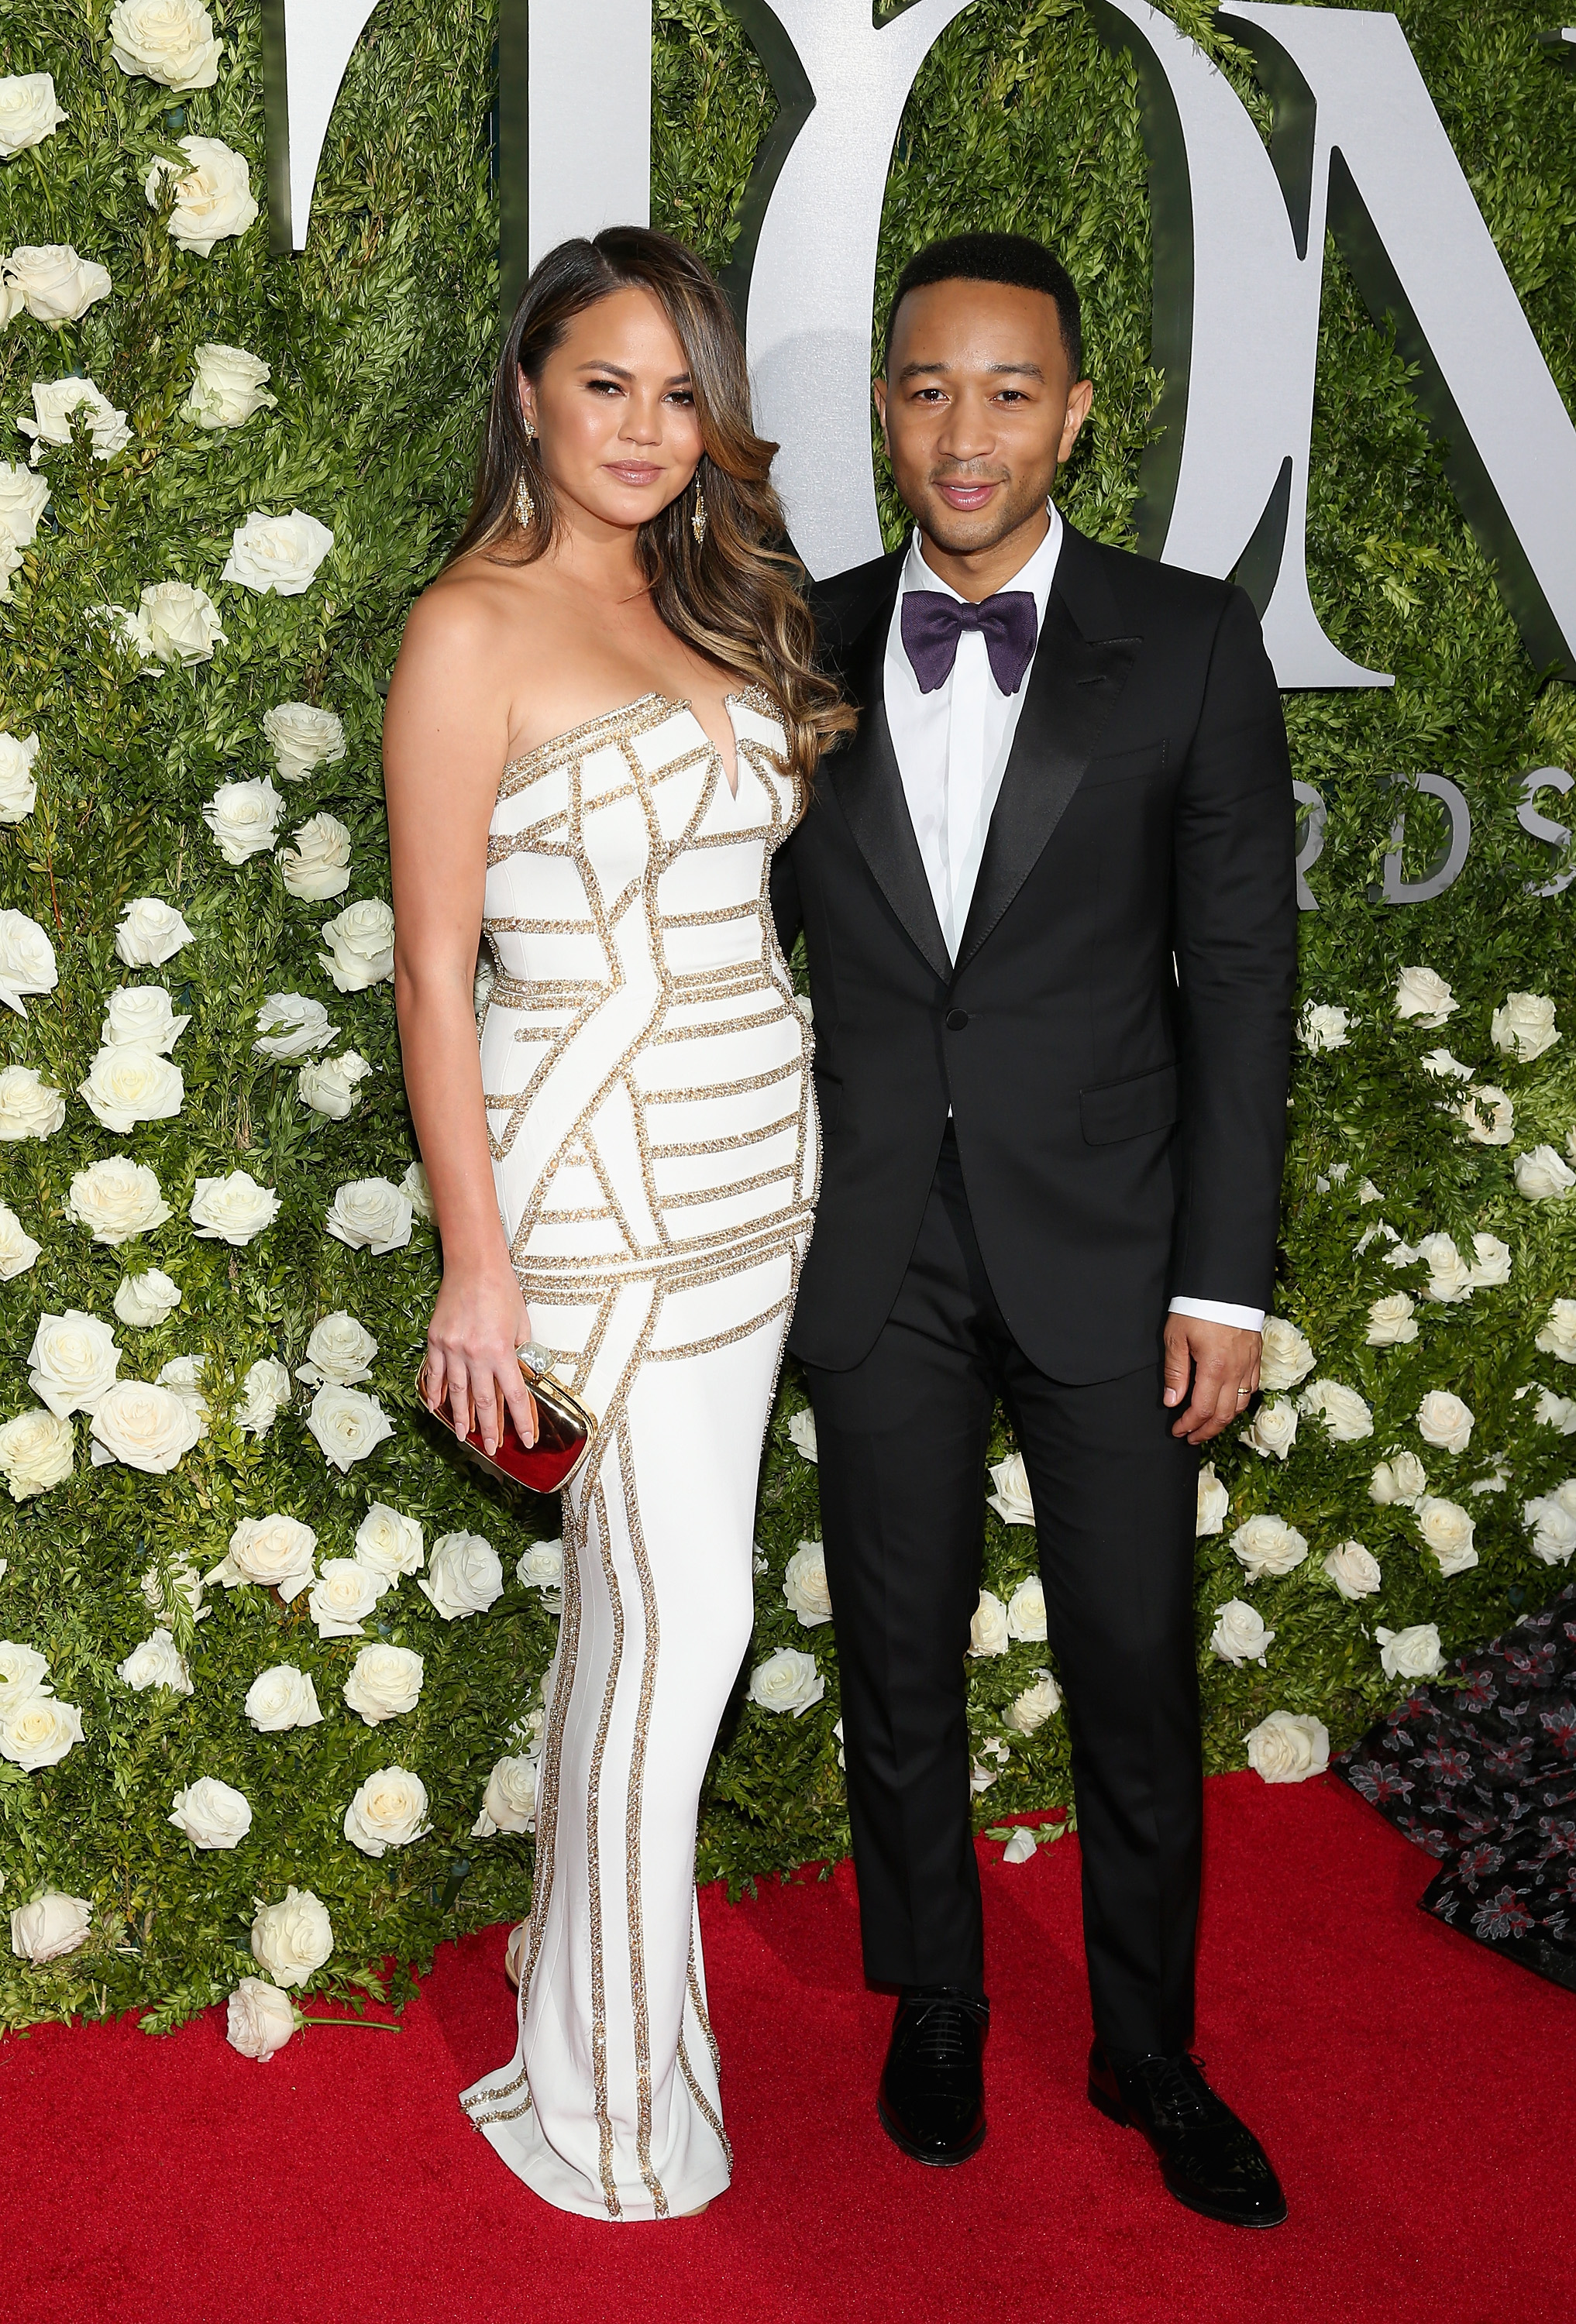 NEW YORK, NY - JUNE 11: Chrissy Teigen and John Legend attend the 2017 Tony Awards at Radio City Music Hall on June 11, 2017 in New York City.  (Photo by Jemal Countess/Getty Images for Tony Awards Productions)